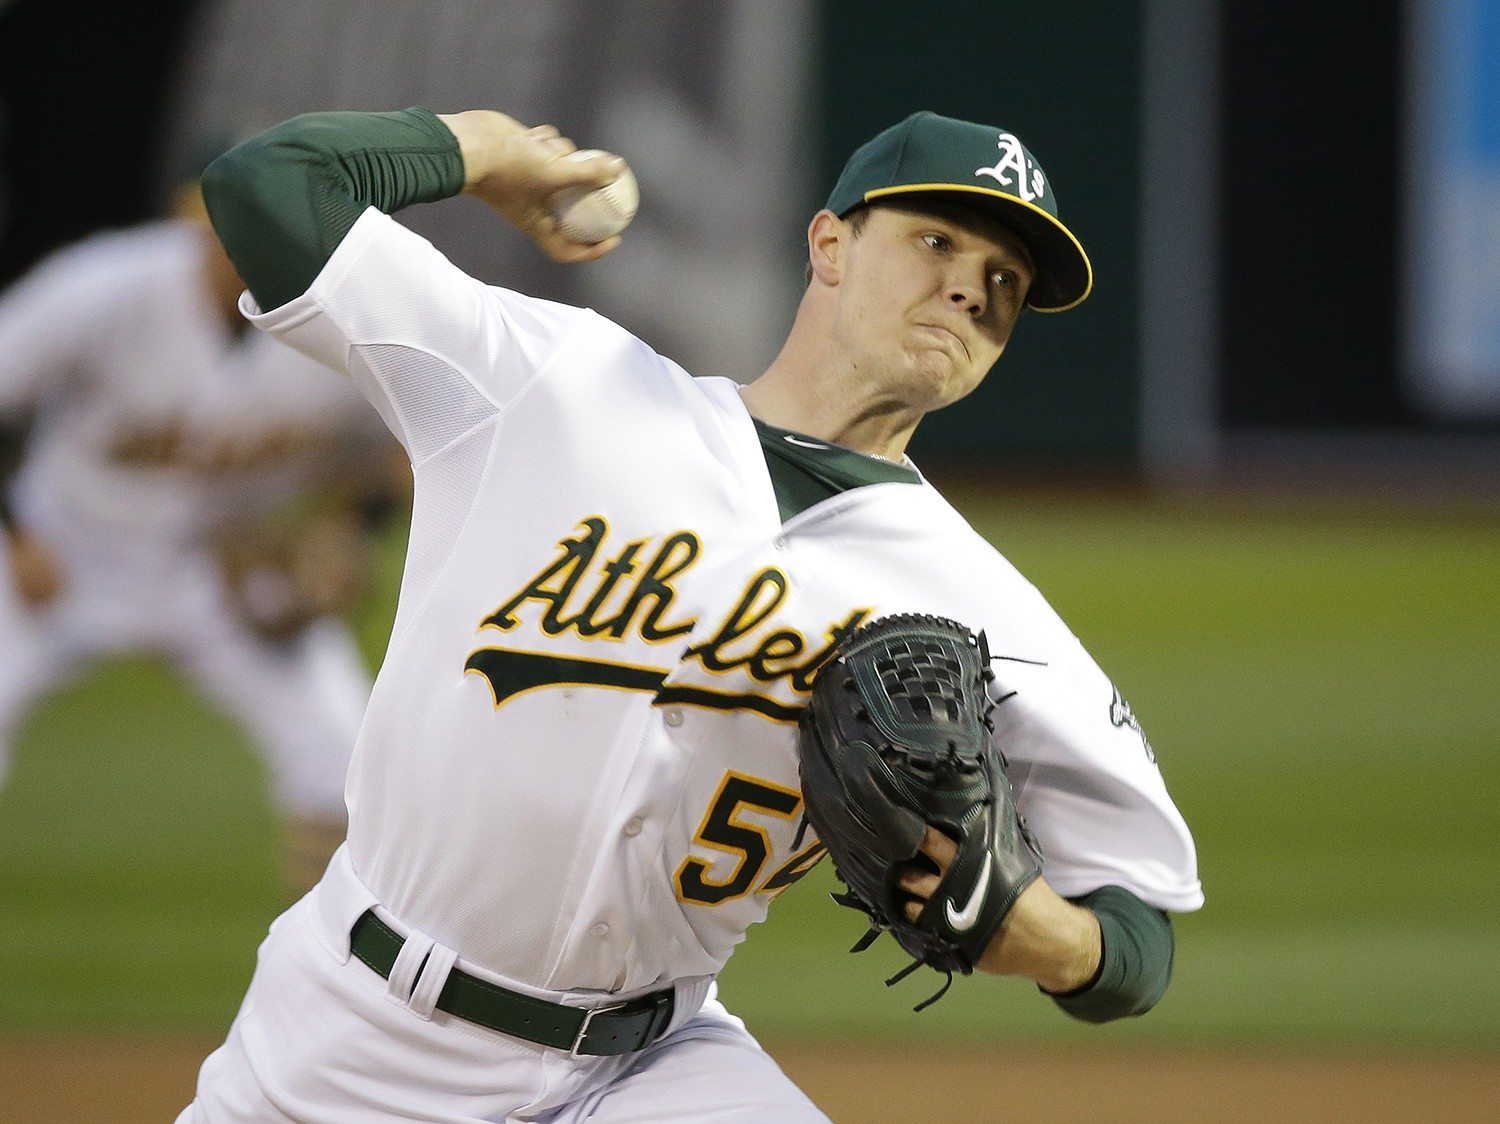 Eric Risberg/APA's pitcher Sonny Gray took a no-hitter into the eighth inning against the Rangers in the season opener on Monday.